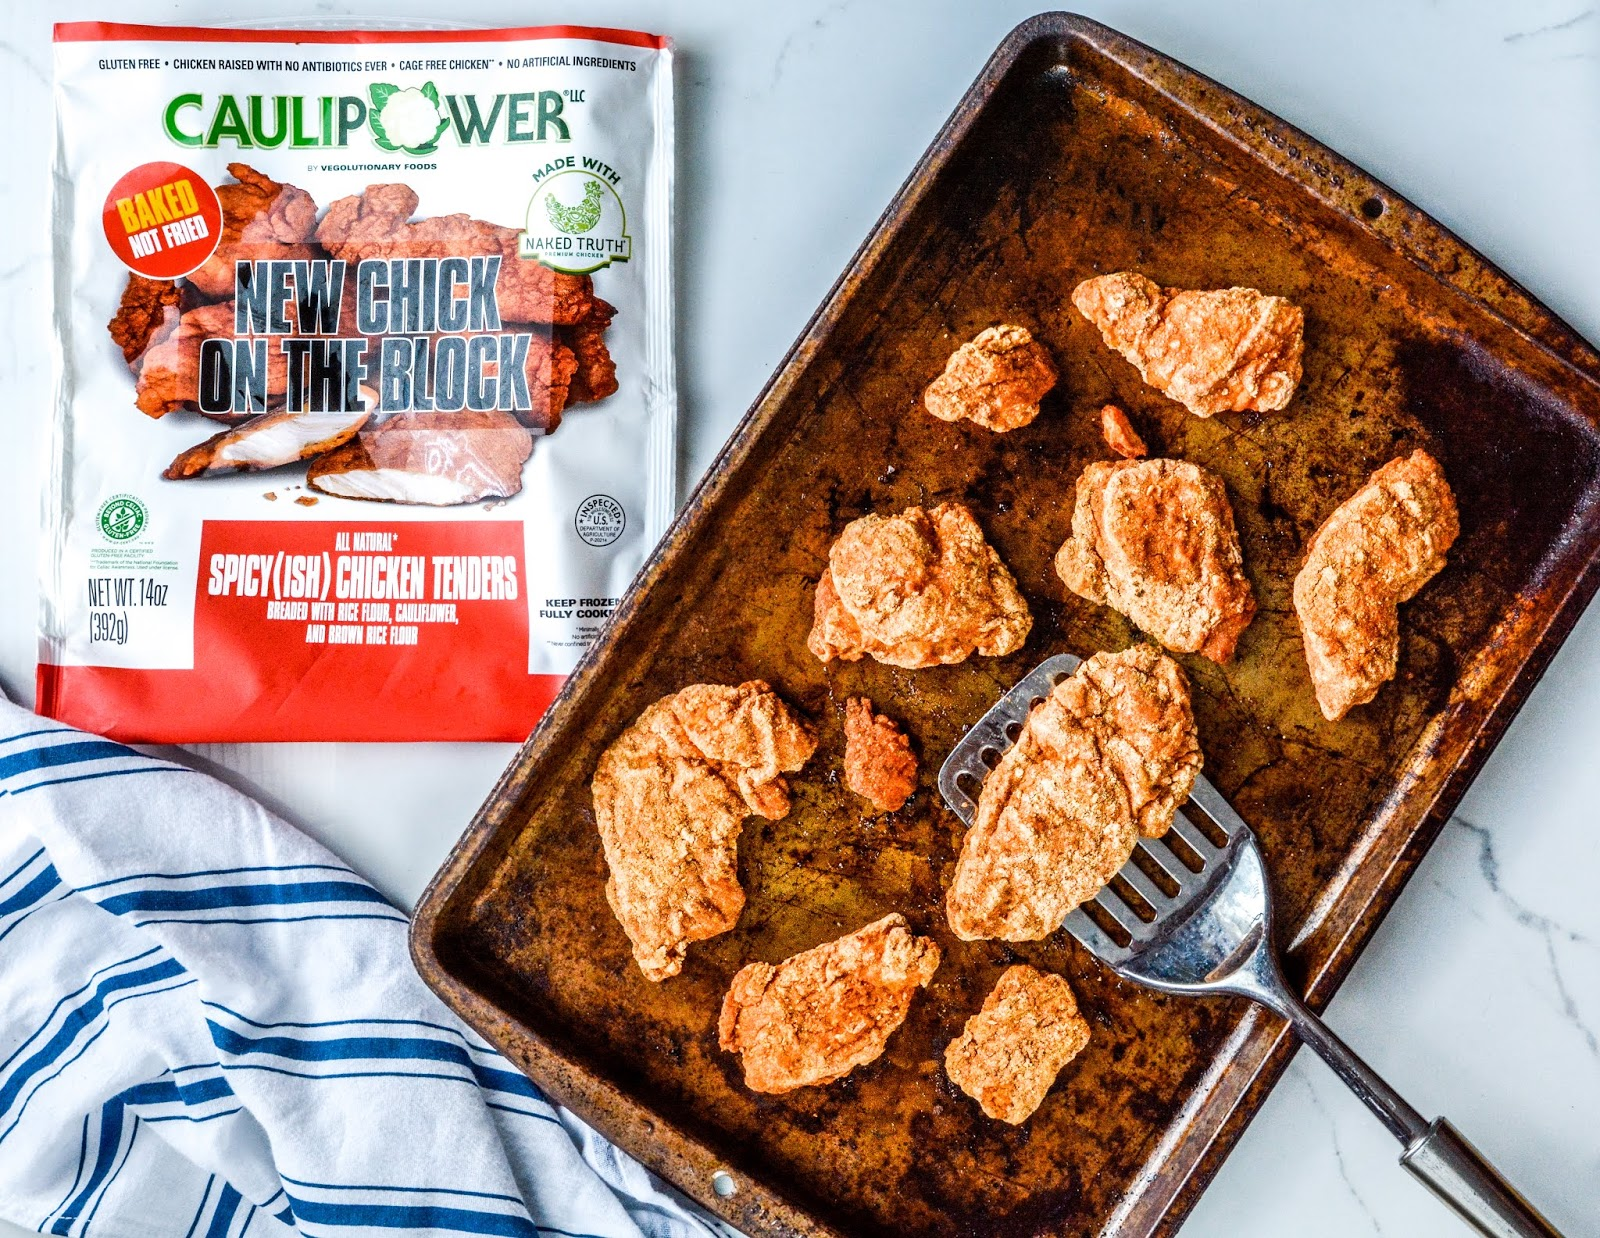 CAULIPOWER Chicken